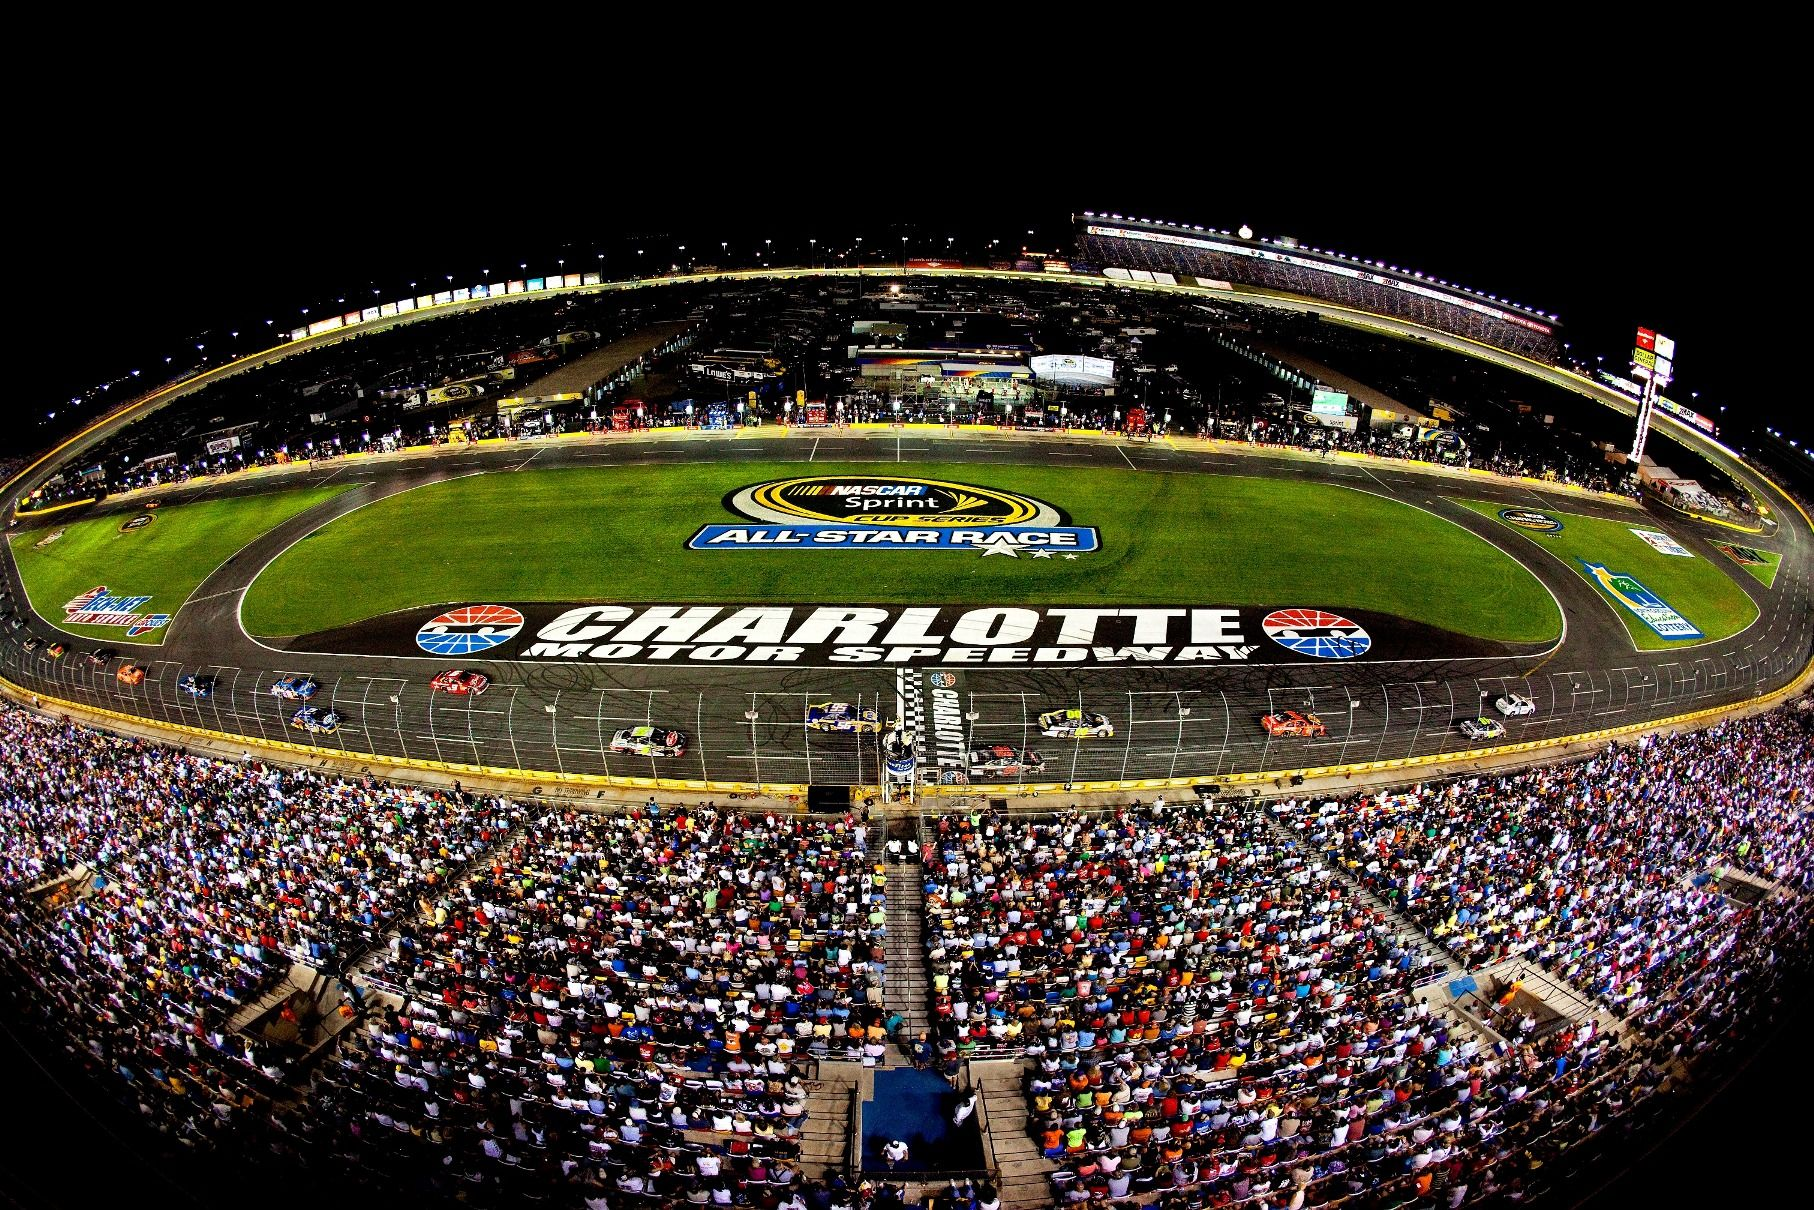 Talladega nights the ballad of ricky bobby 2006 for Tickets to charlotte motor speedway